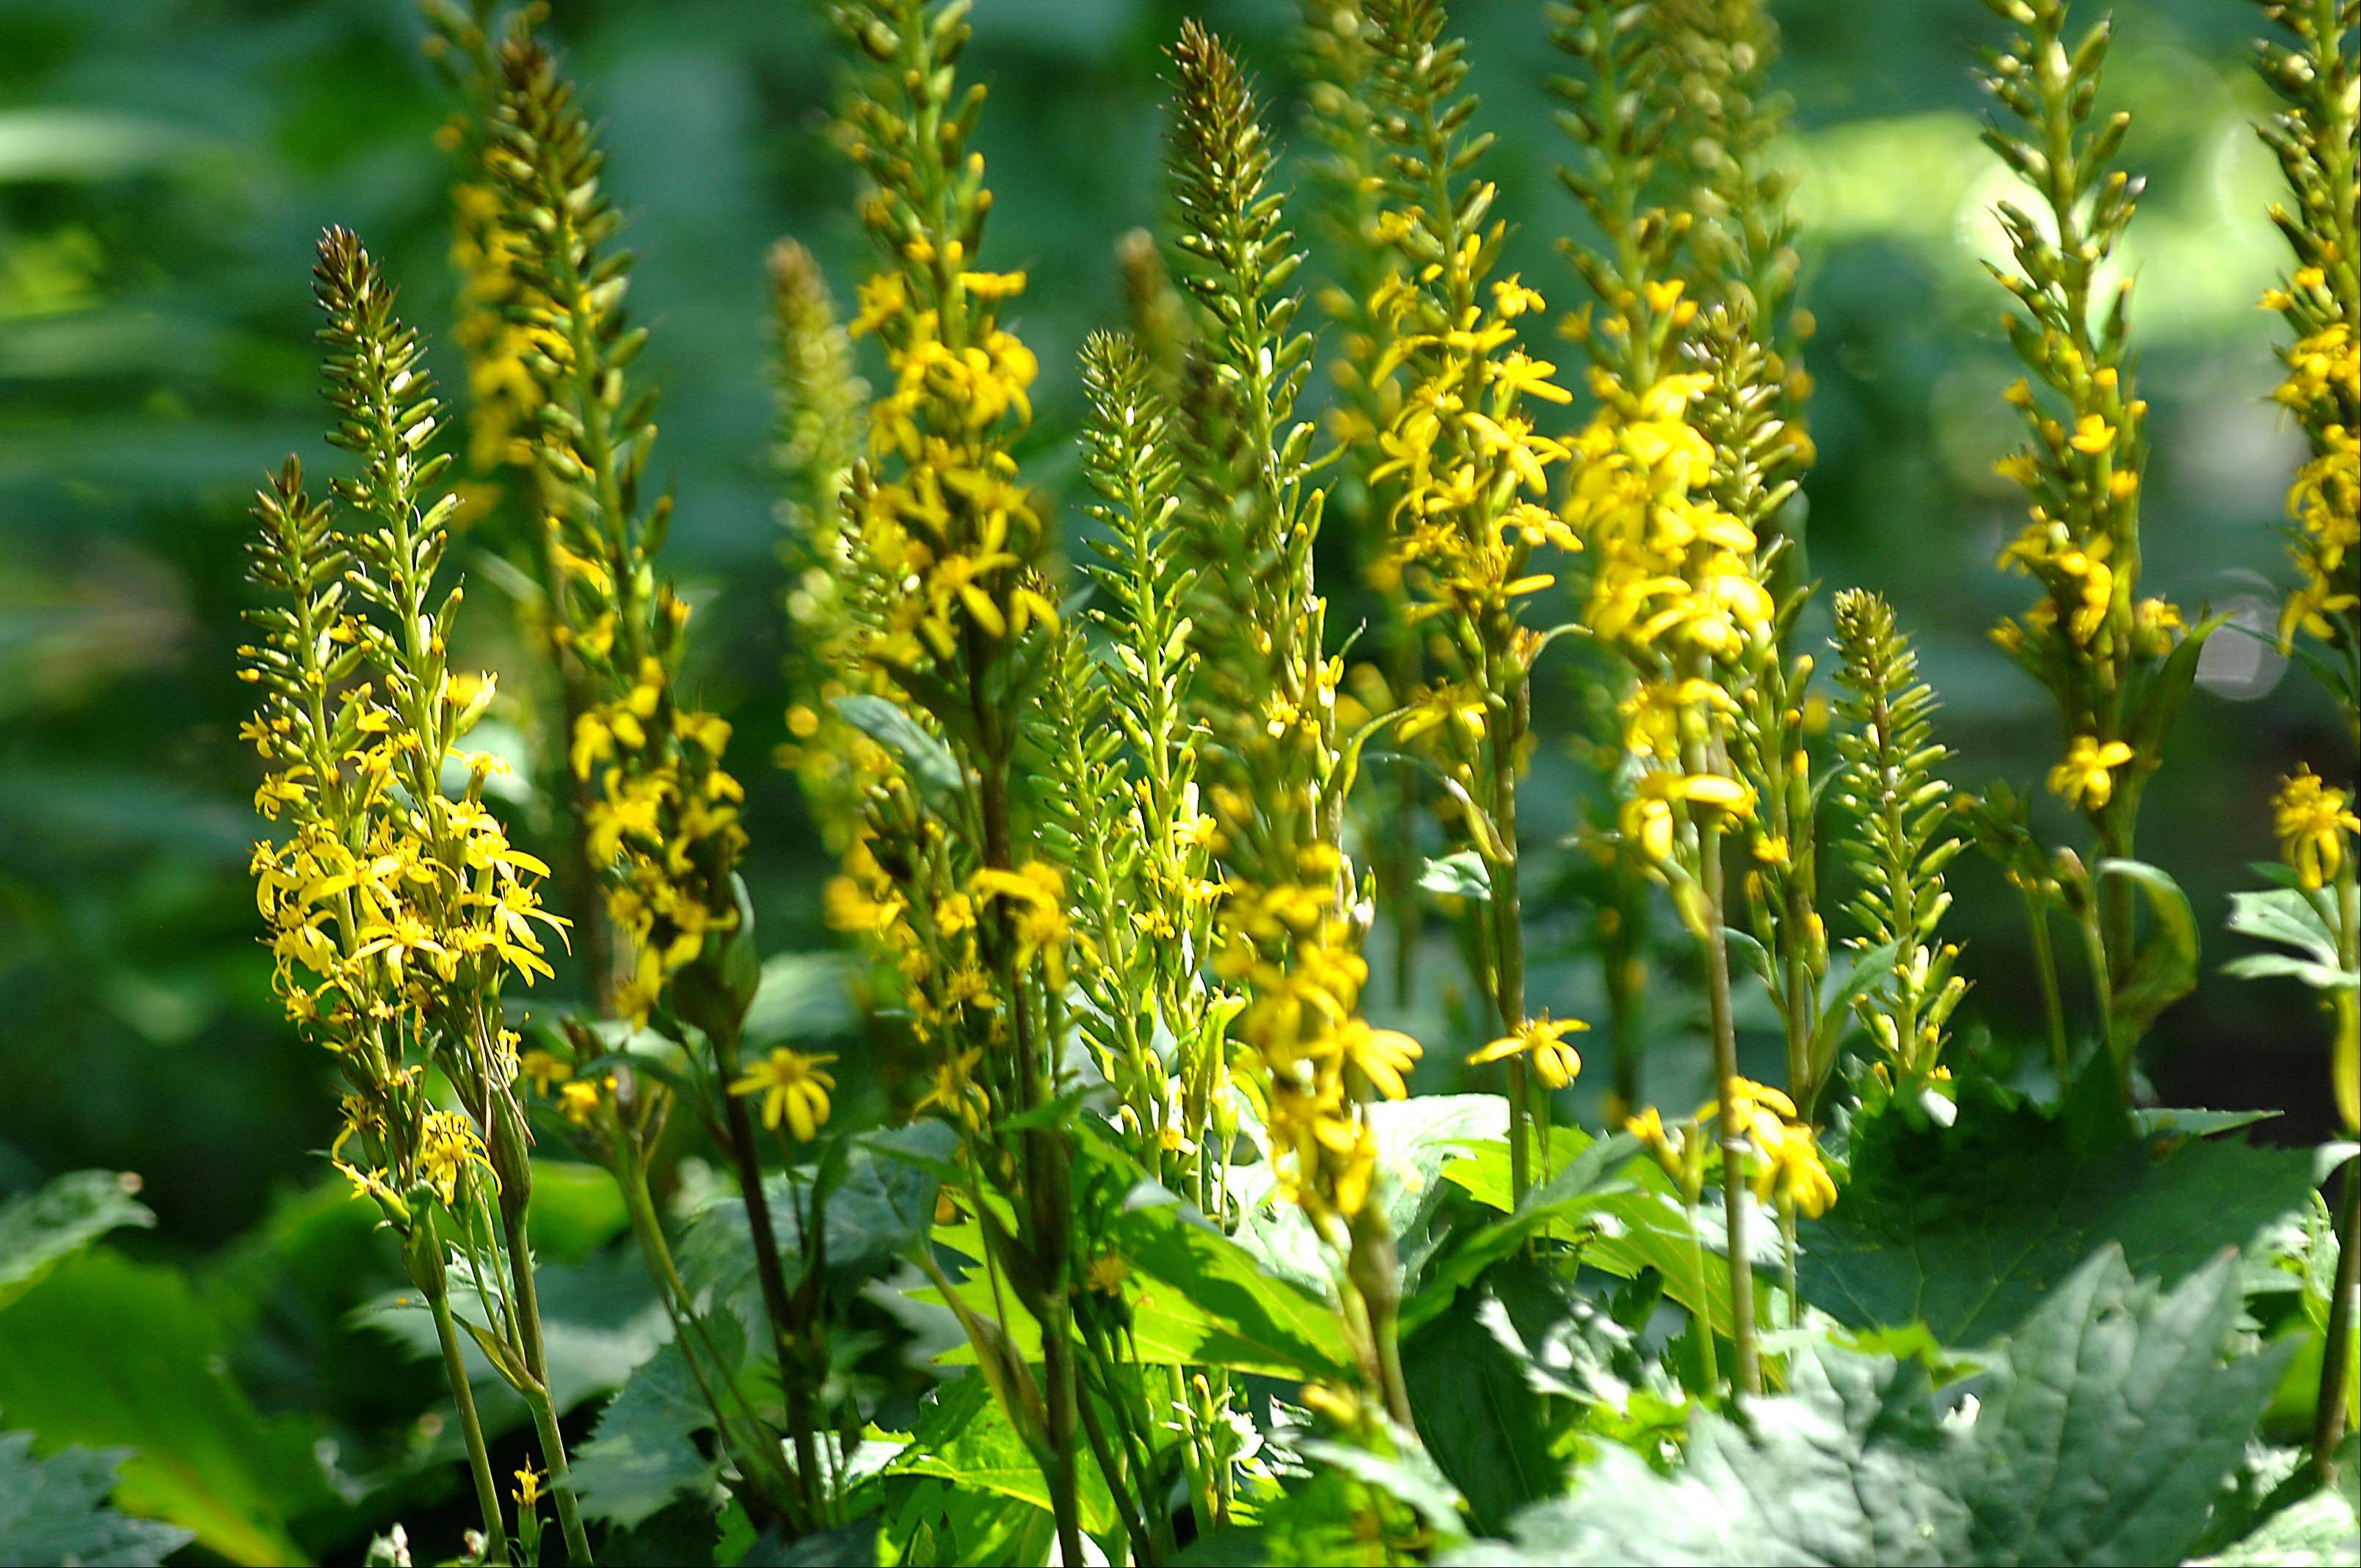 Ligularia Little Rocket glows in the woodland garden called Tranquility Trails.